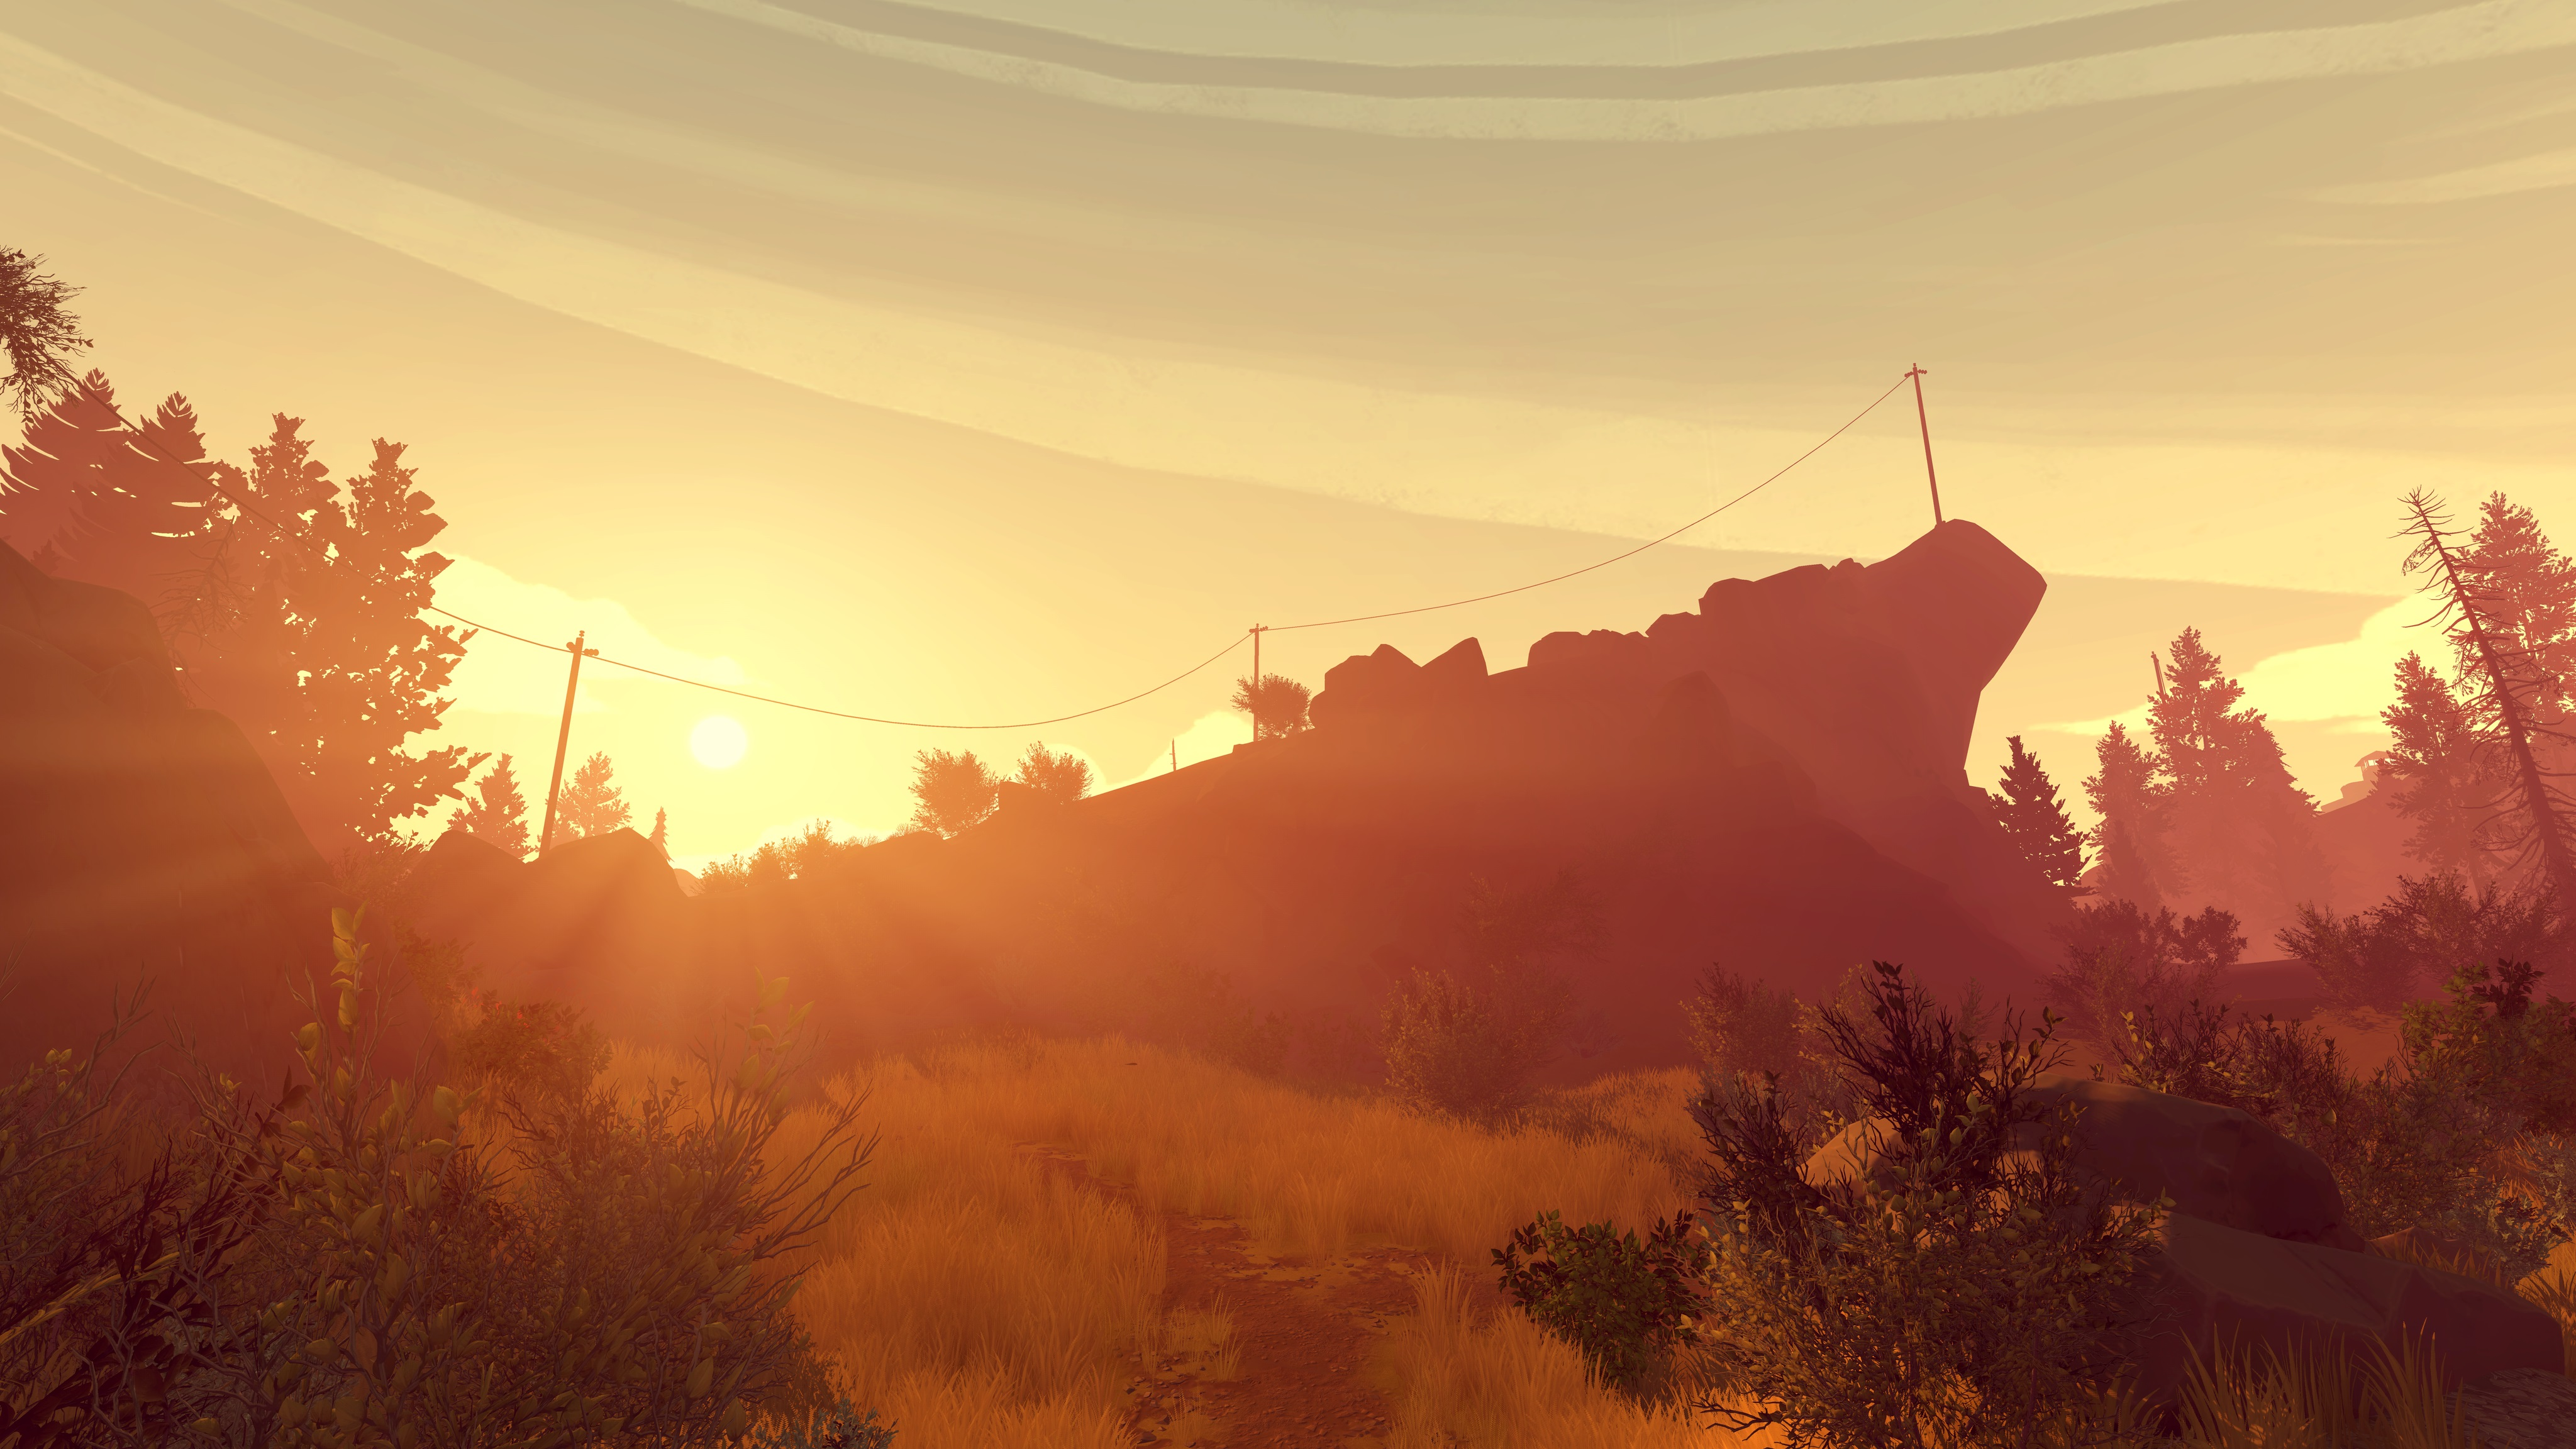 Dragon Ball Z Iphone Wallpaper Firewatch Review Campo Santo Games Reviews The Escapist